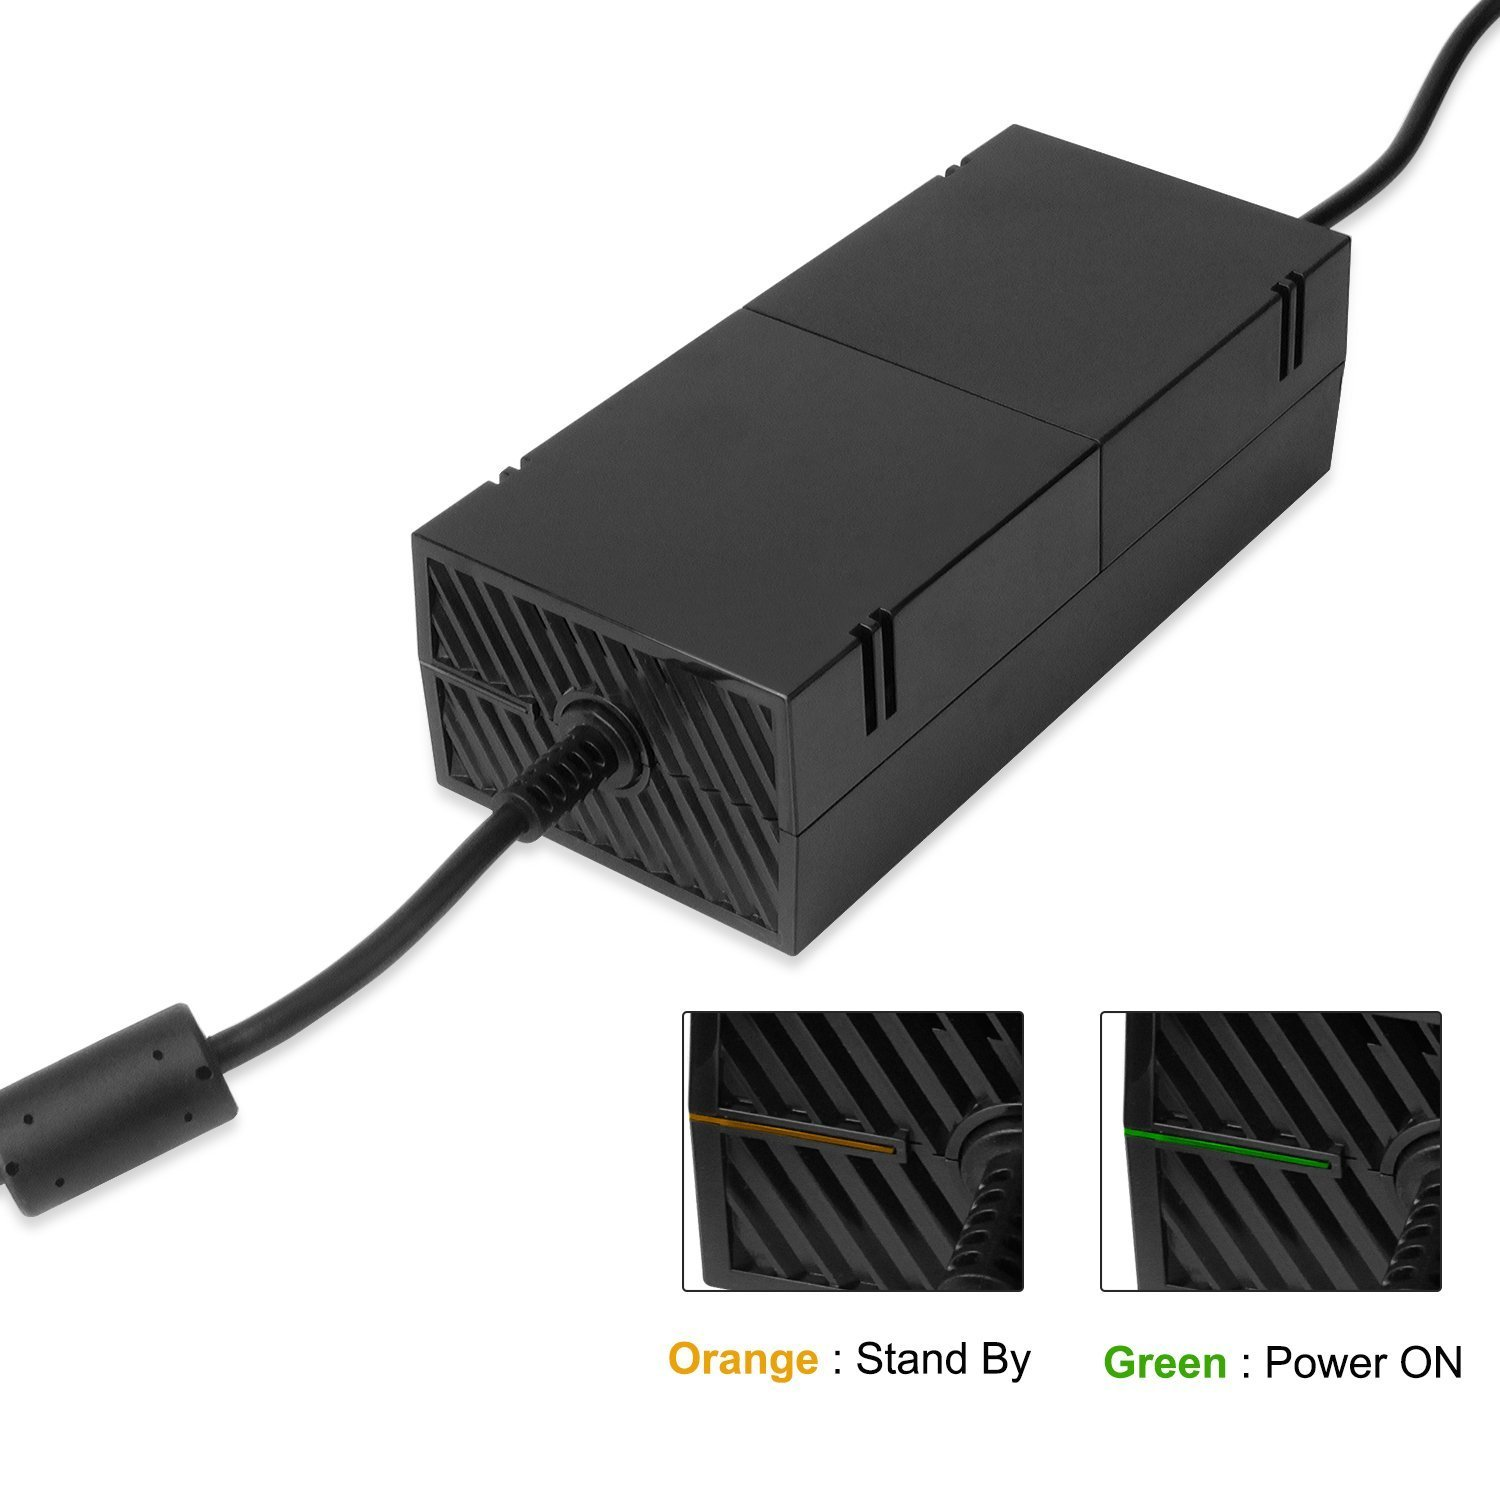 Xbox One Power Supply Brick Quite Version Ac Adapter Wiring Black White Green Cable Replacement Kit For 1 Console Games Auto Voltage 100 240v Computers